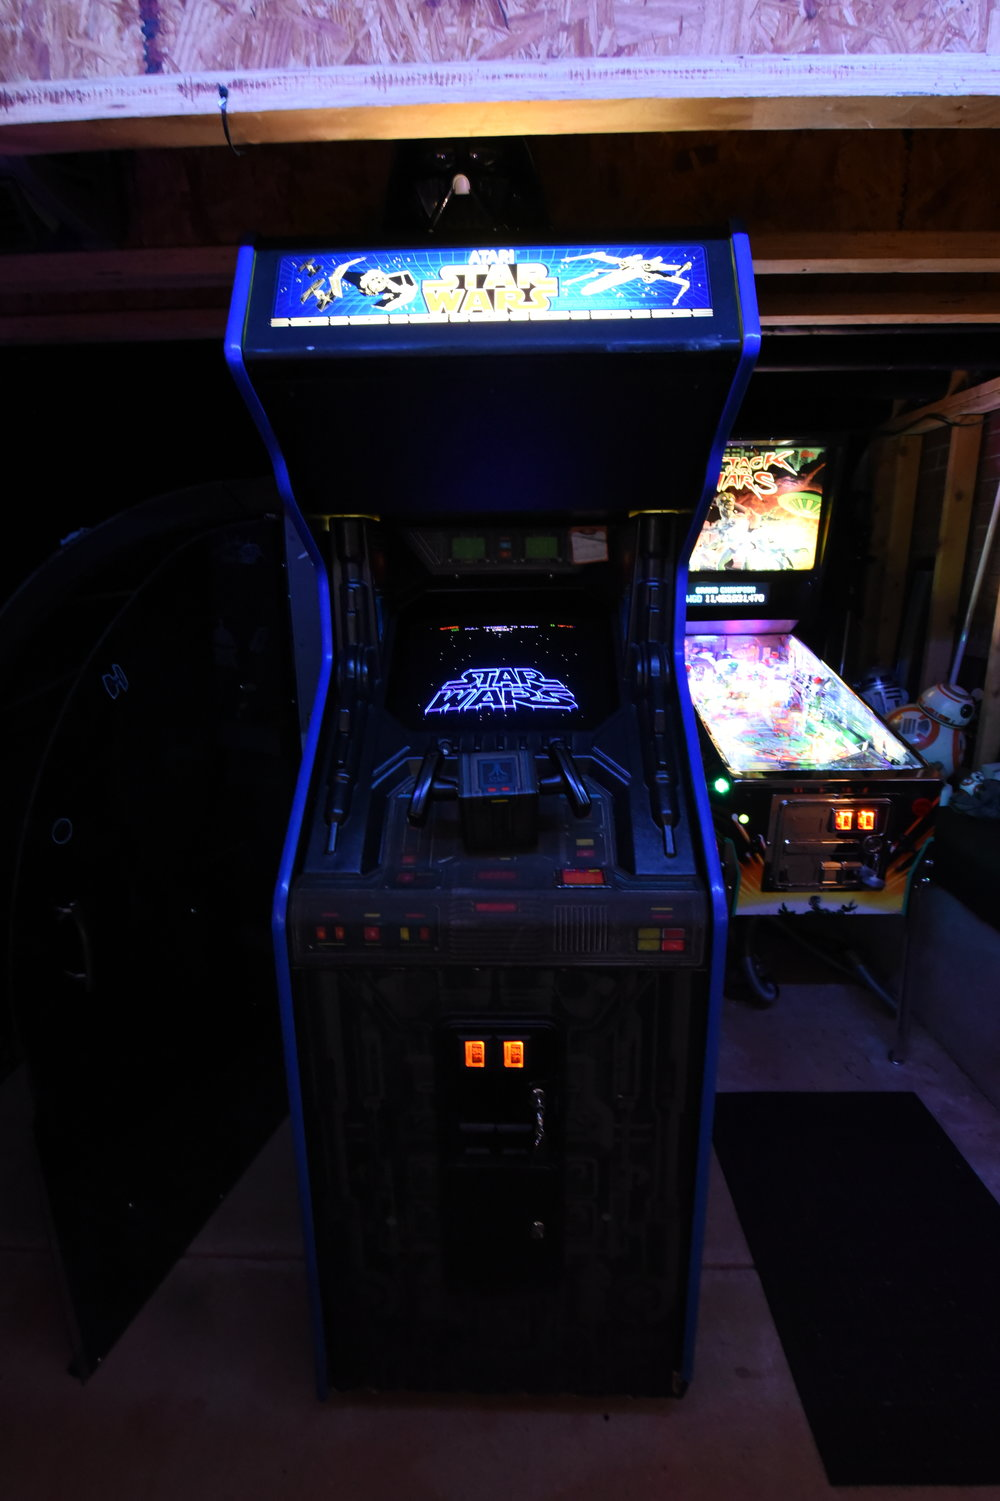 Many Bothan's died to bring this arcade to my game room. Procured from Michael @ Automated Services / pinballs.com. I parted with a Star Wars Trilogy stand up to make room for it, first part of 2018. I fixed the marquee light and worked out some cabinet swell. It has some typical wood-hardener-repairs on the cabinet bottom. It has a Wells 6100, Empire Strikes Back kit as well. I replaced a damaged AVG chip with a modern remade AVG chip, recapped the power supply and fixed some sound-issues to get it to this point.